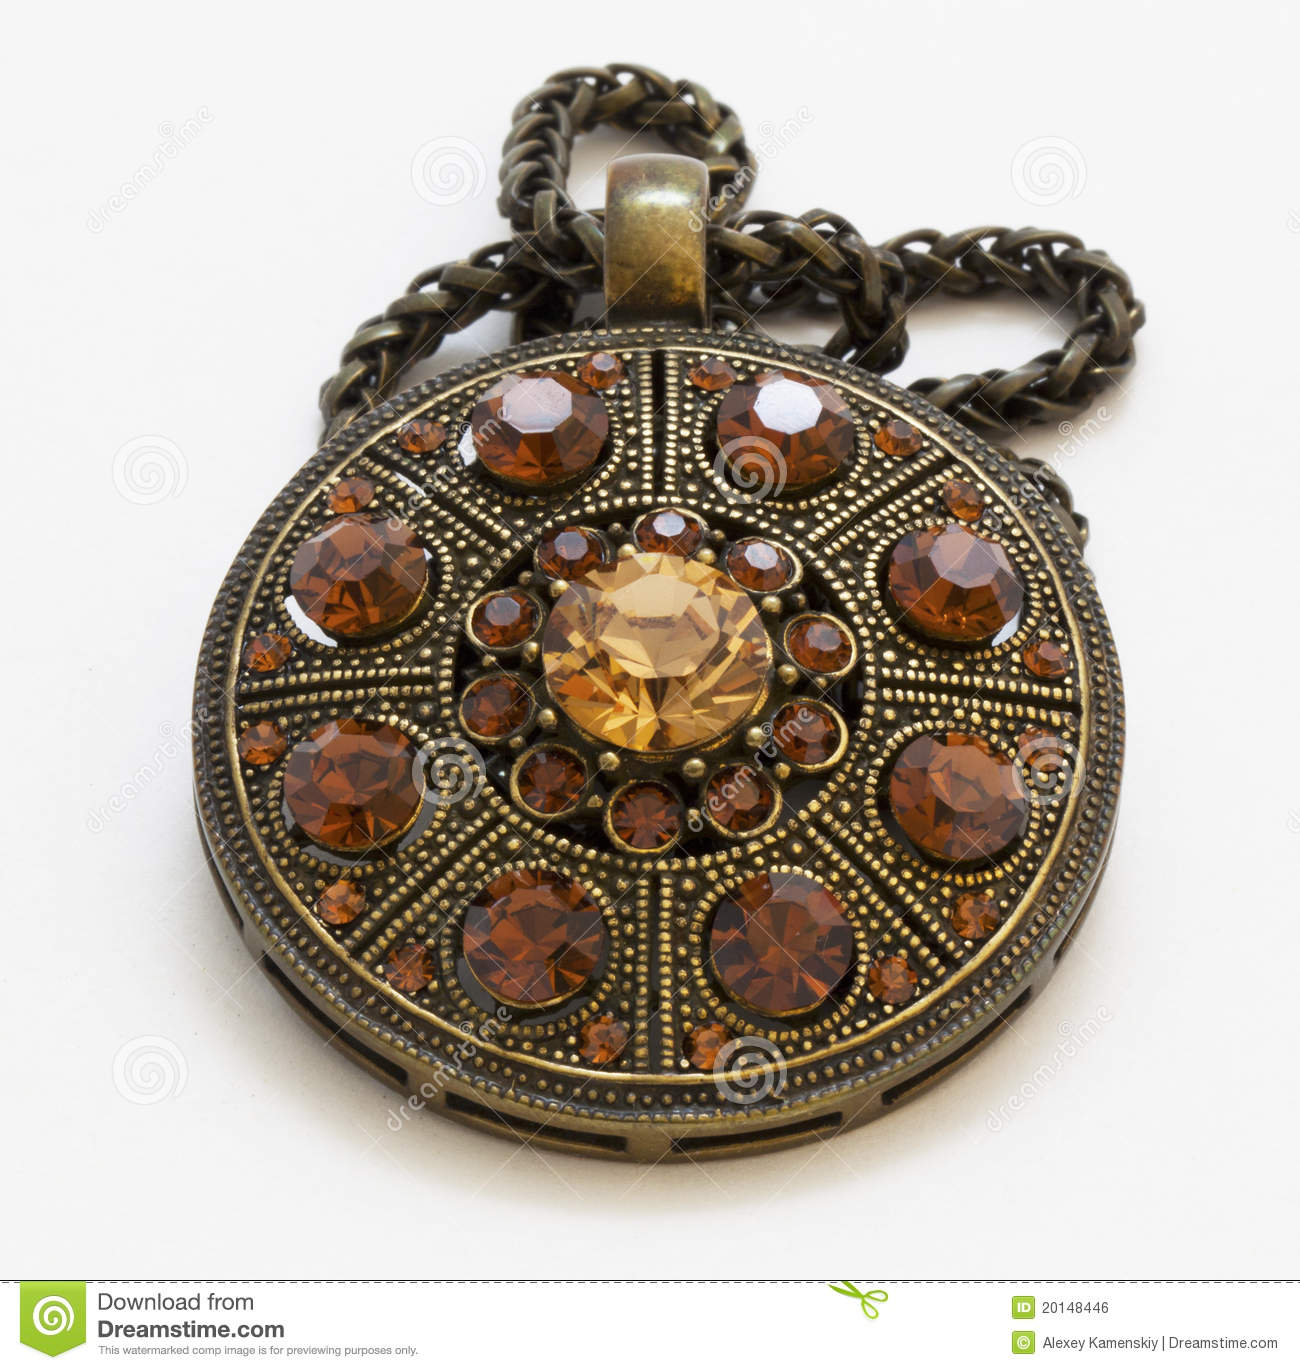 Vintage amulet stock photo  Image of magic, witch, bead - 20148446